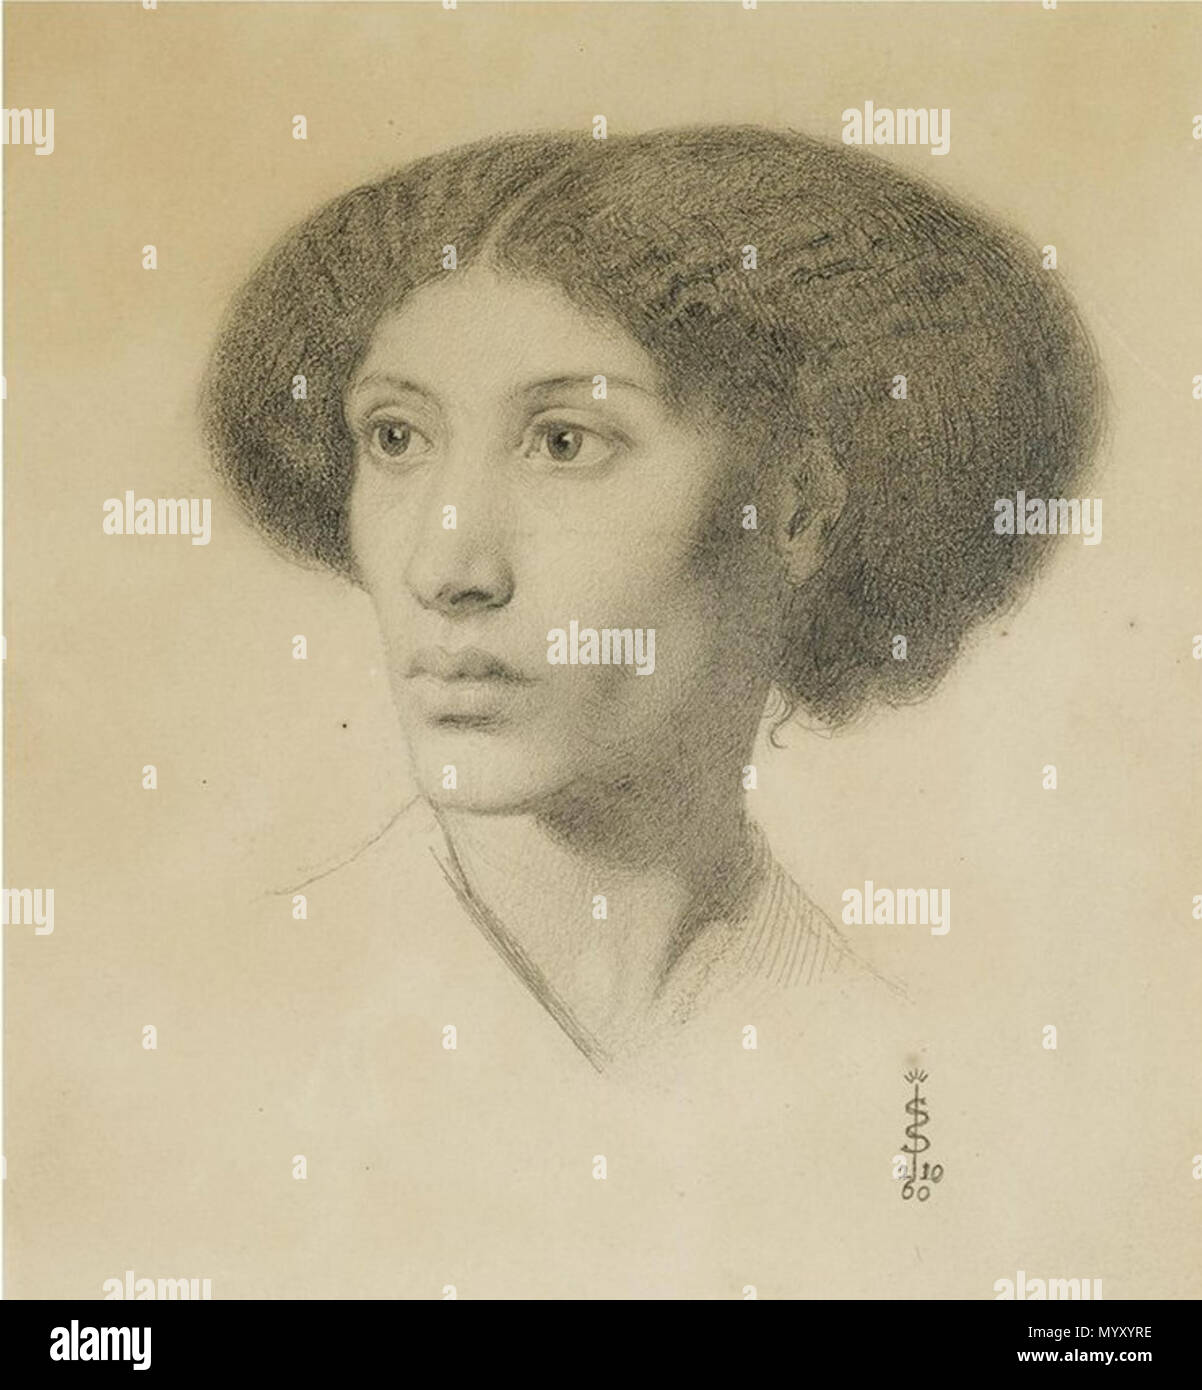 English: Fanny Eaton by Simeon Solomon   1 January 1860  Simeon